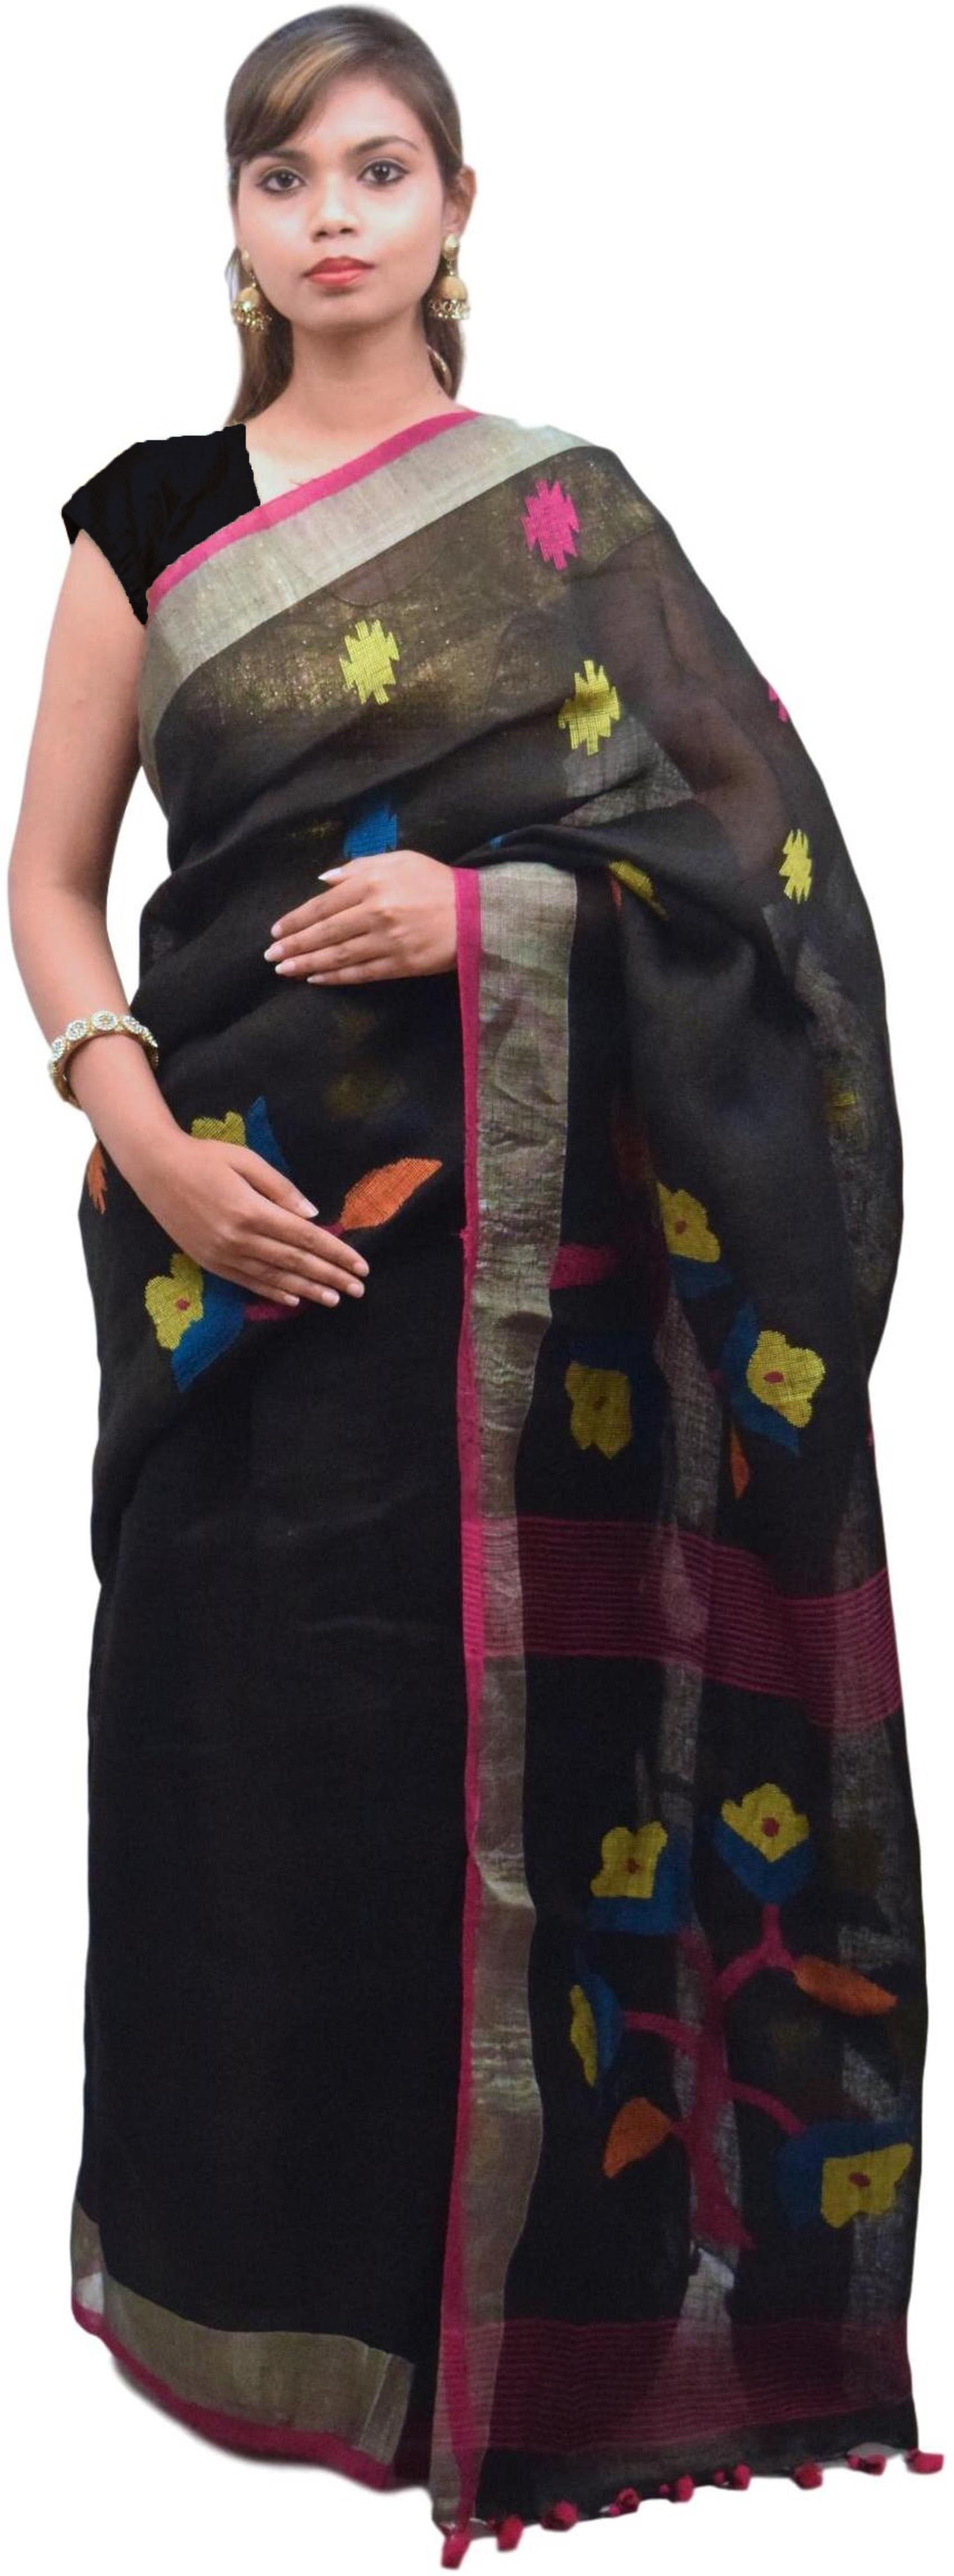 Black Designer Wedding Partywear Pure Handloom Bengal Bangali Cotton Kolkata Saree Sari E125